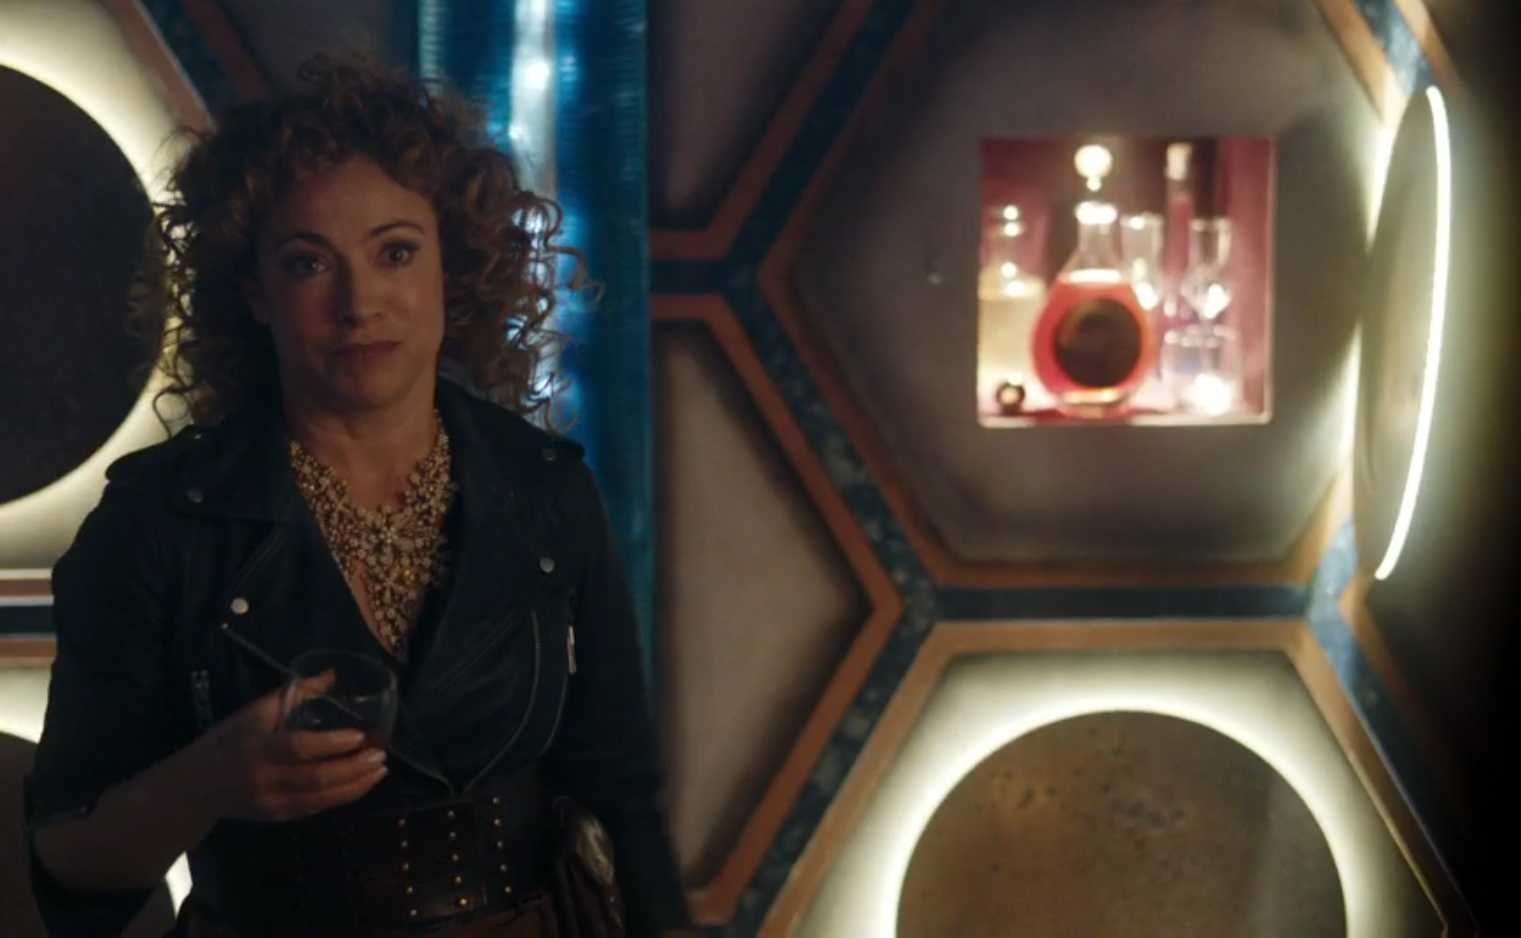 River Song as in The Husbands Of River Song